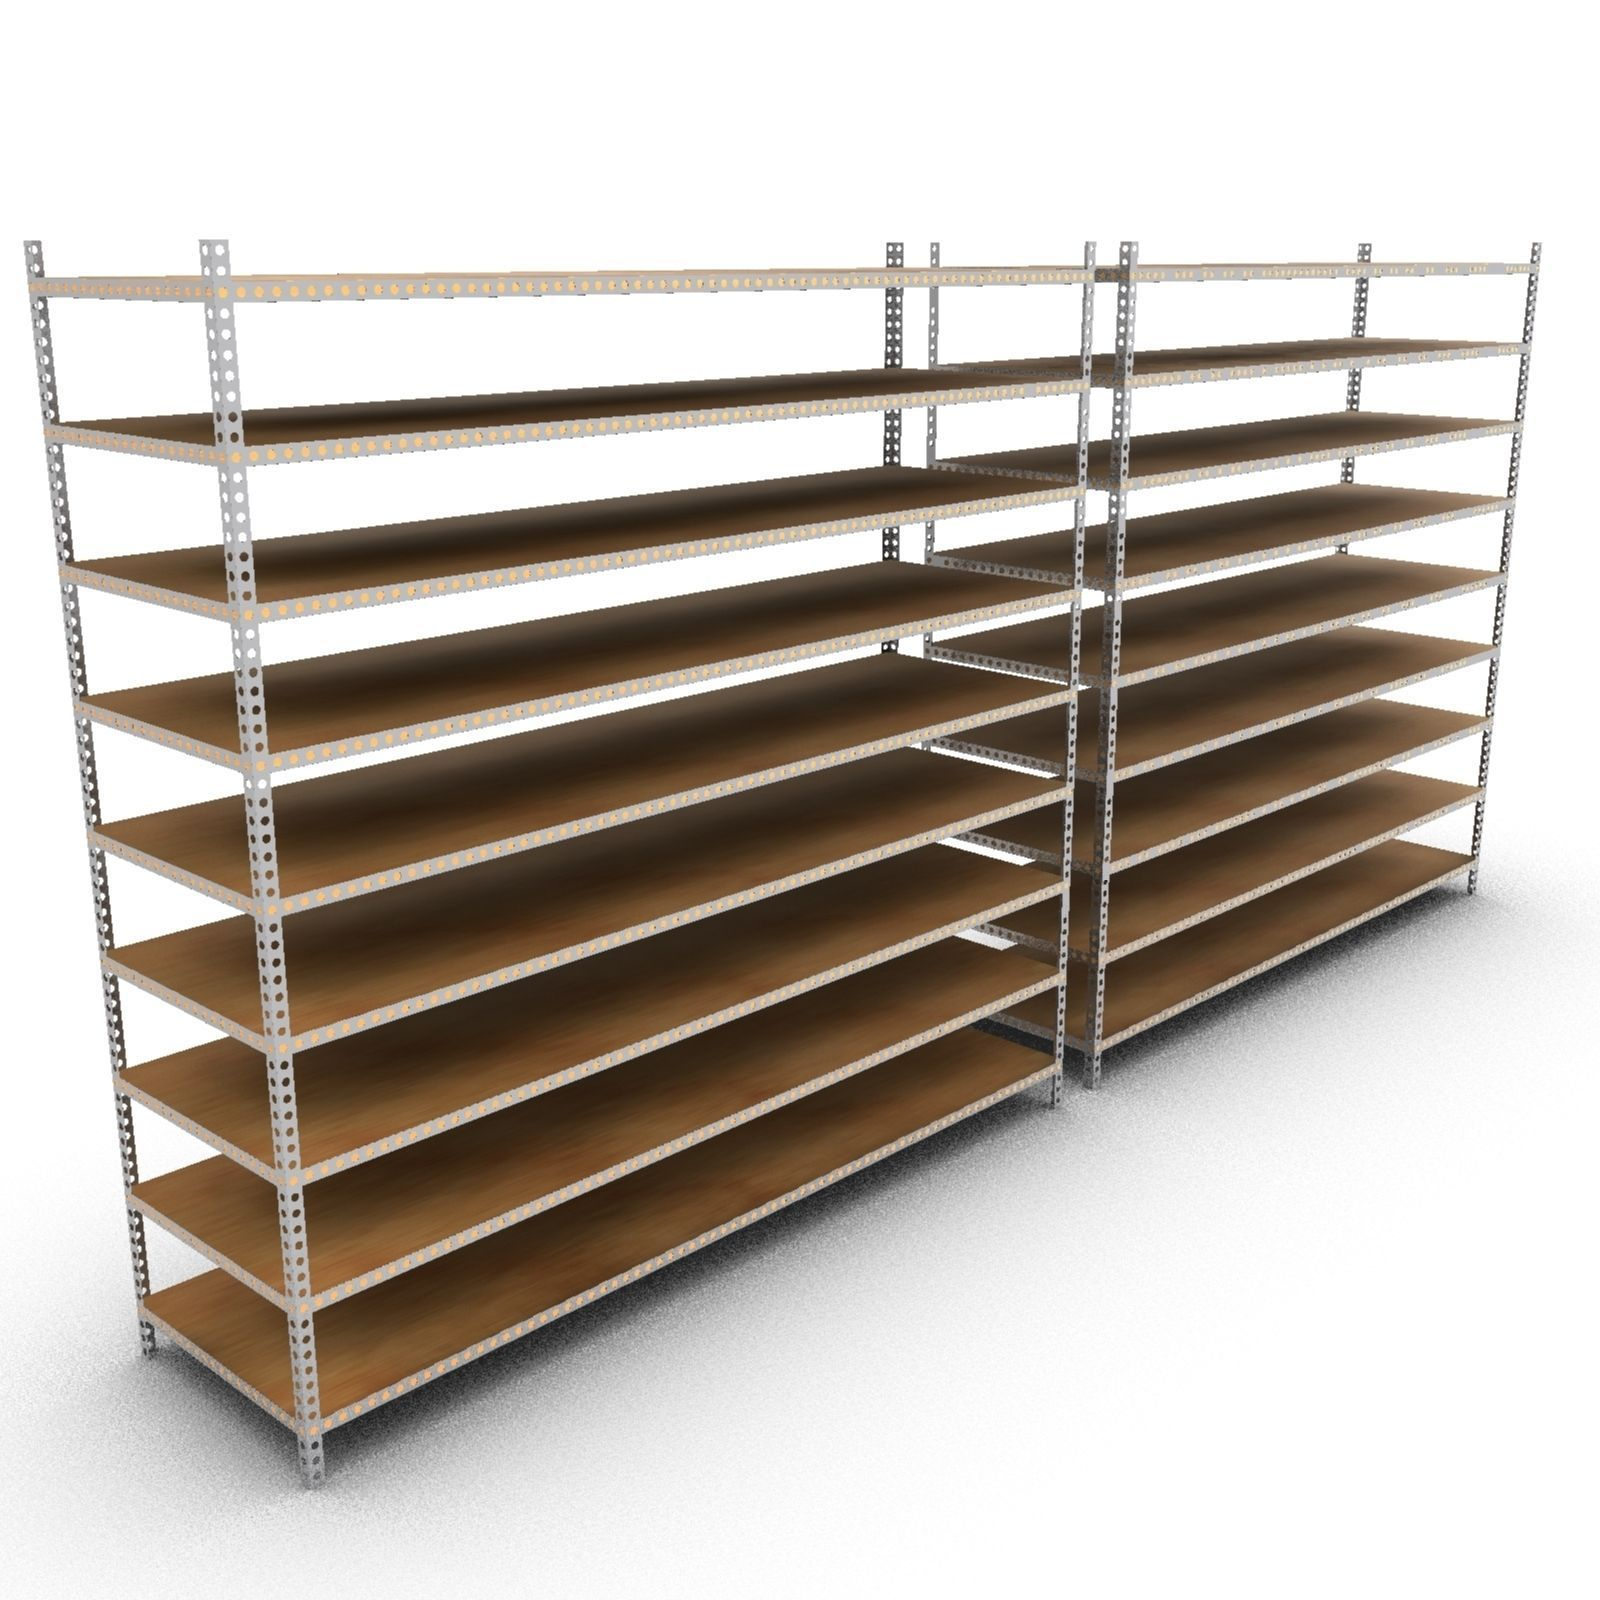 detail warehouse product shoe racks industrial stainless steel storage rack cabinet shoes buy furniture